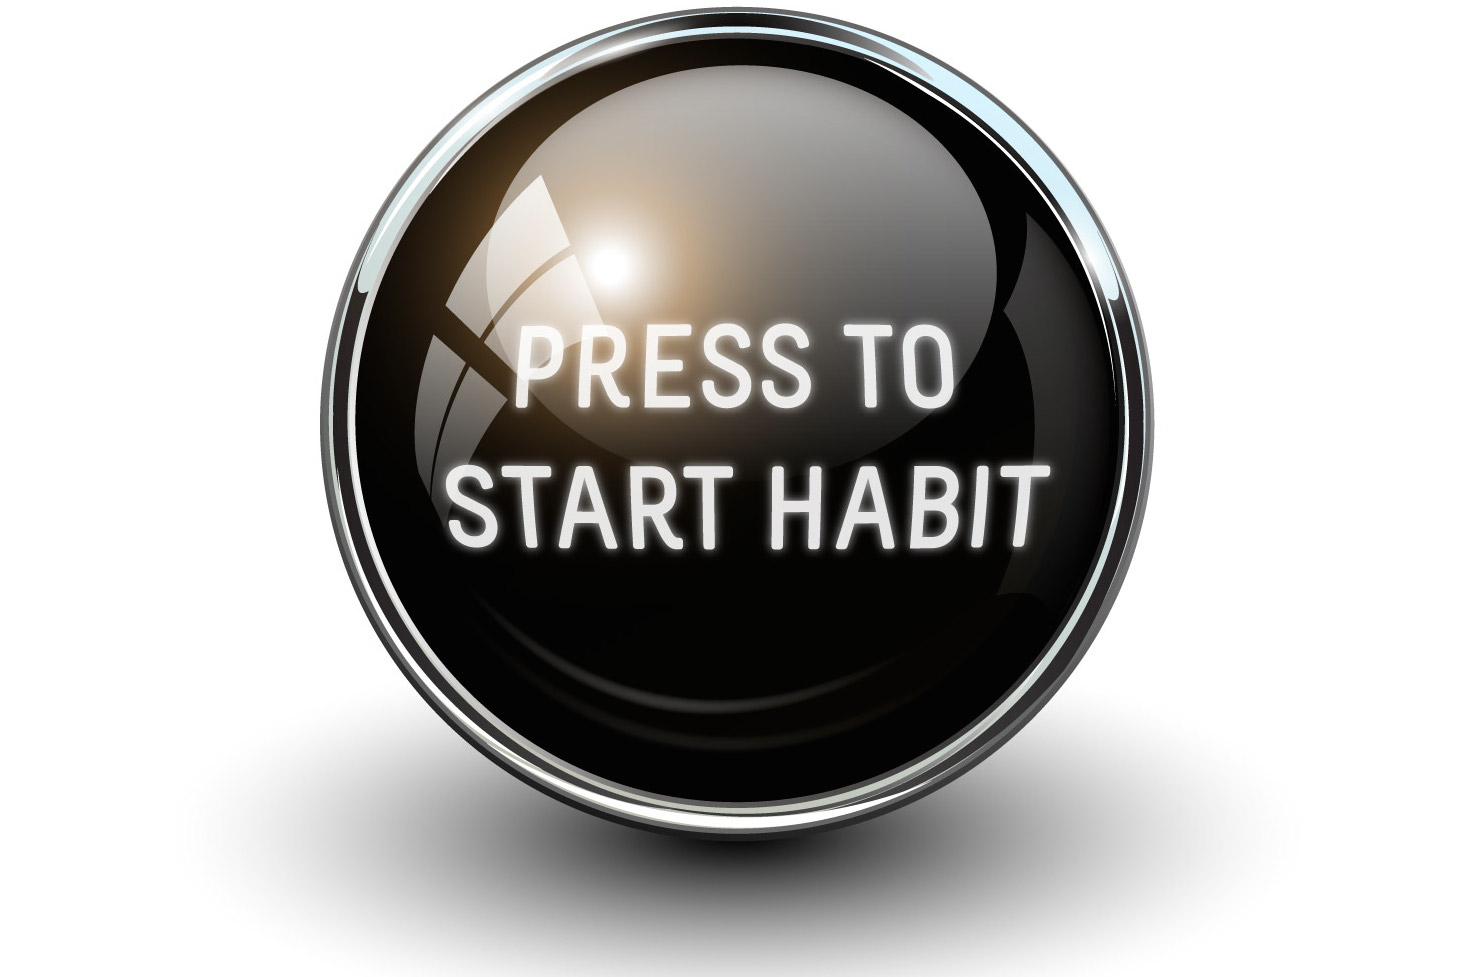 Press To Start Habit (White Wide Crop)